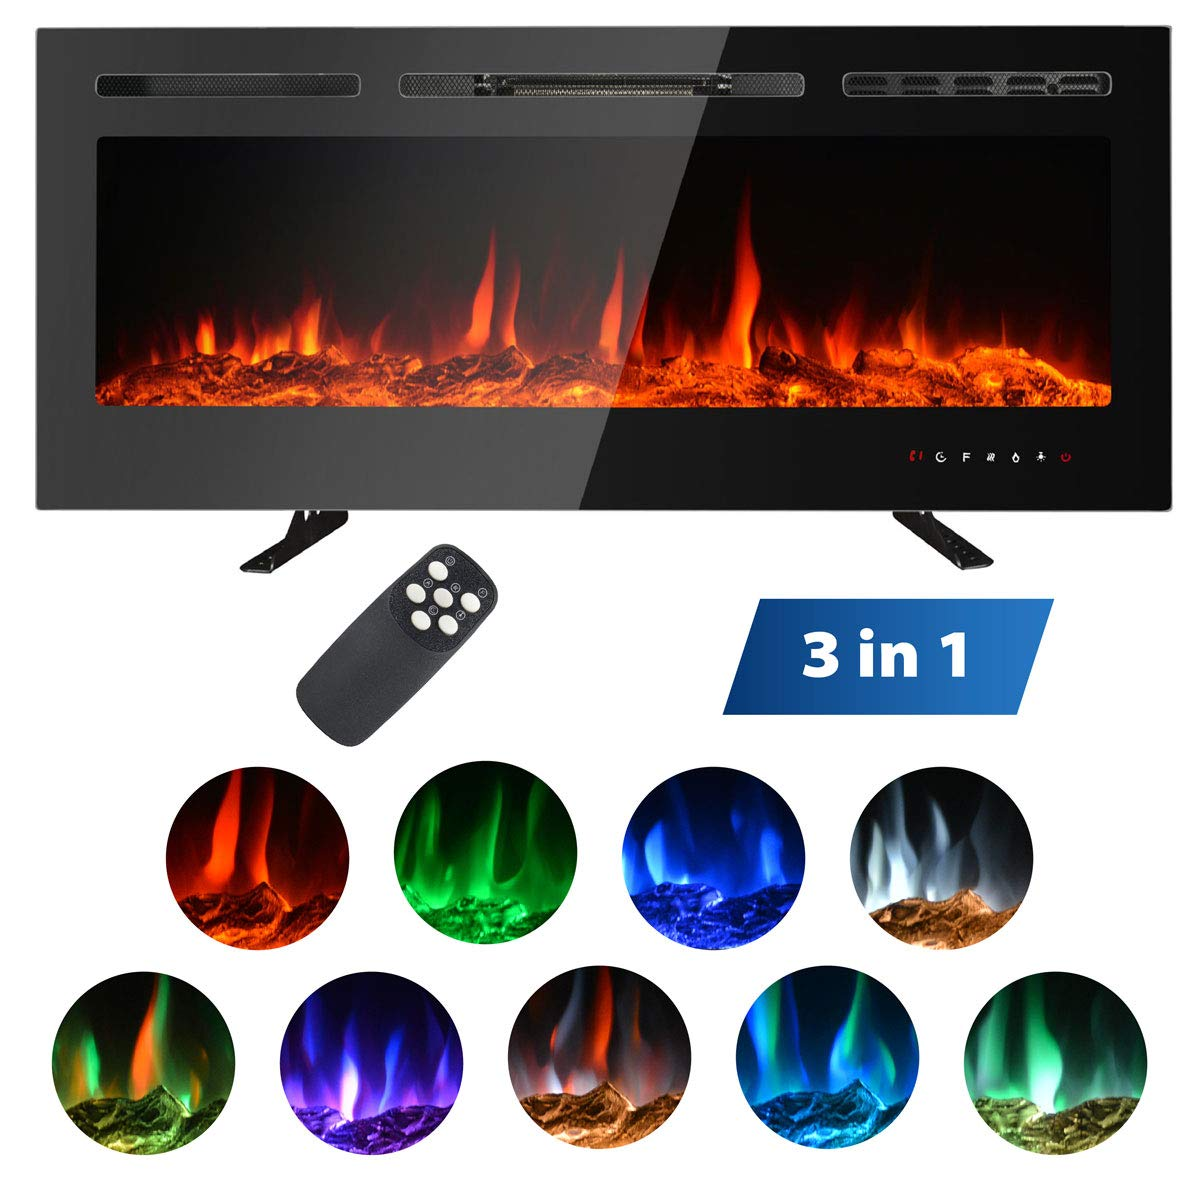 MAXXPRIME 50 Electric Fireplace Insert, Wall Mount, Freestanding in Wall Recessed Fireplace Heater with Remote Control and Touch Screen